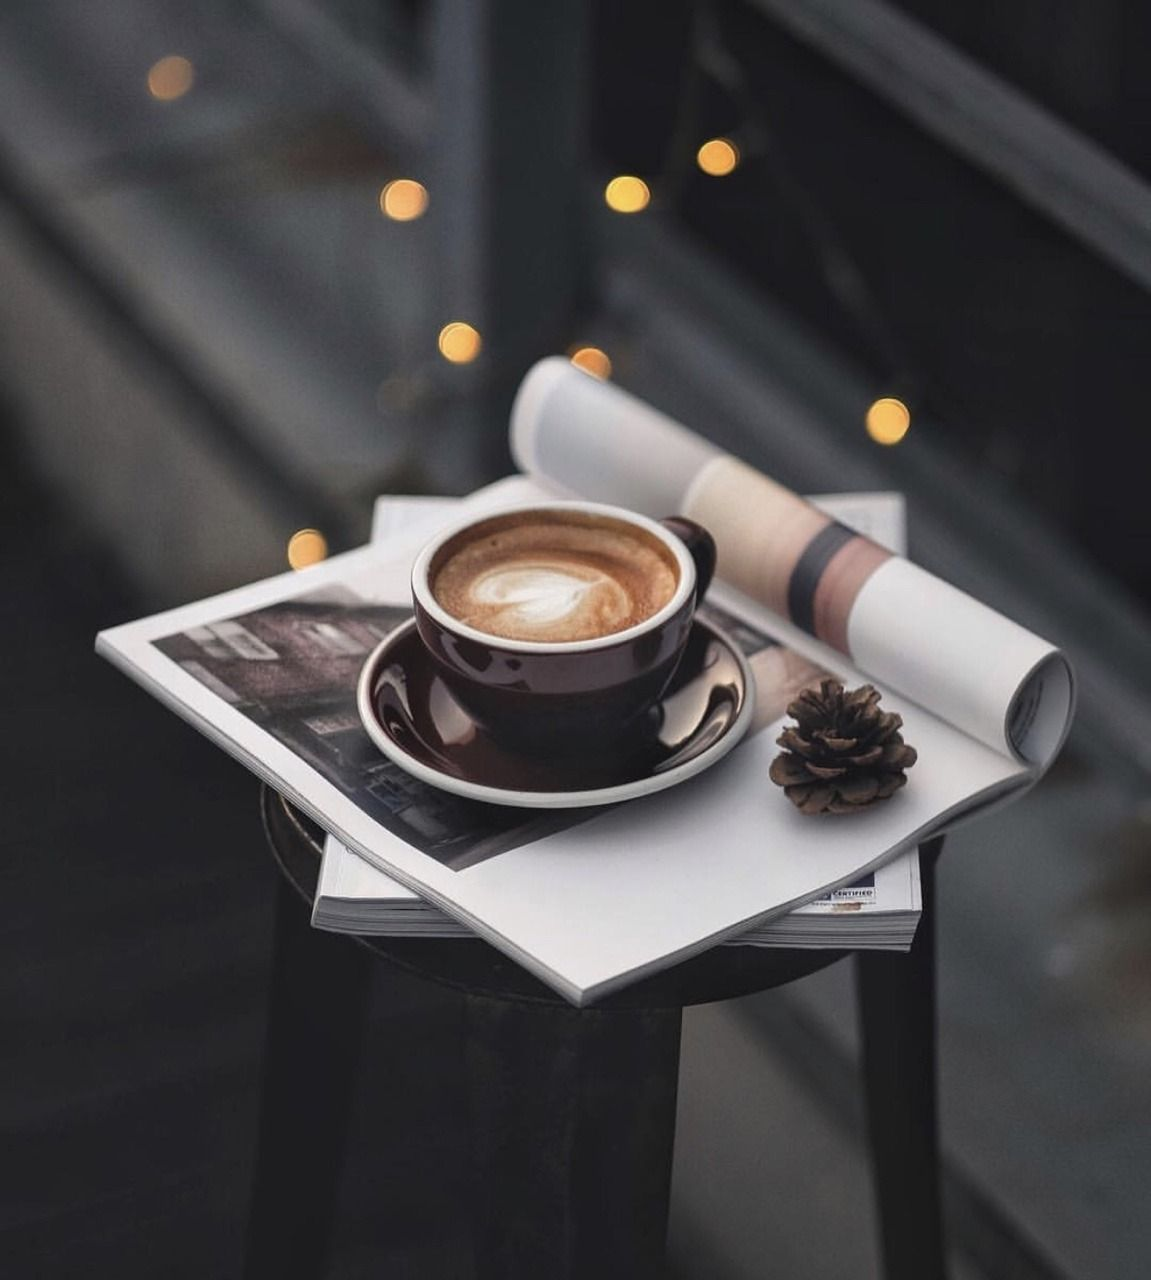 Café #Coffee | Coffee love, Coffee drinks, Coffee art